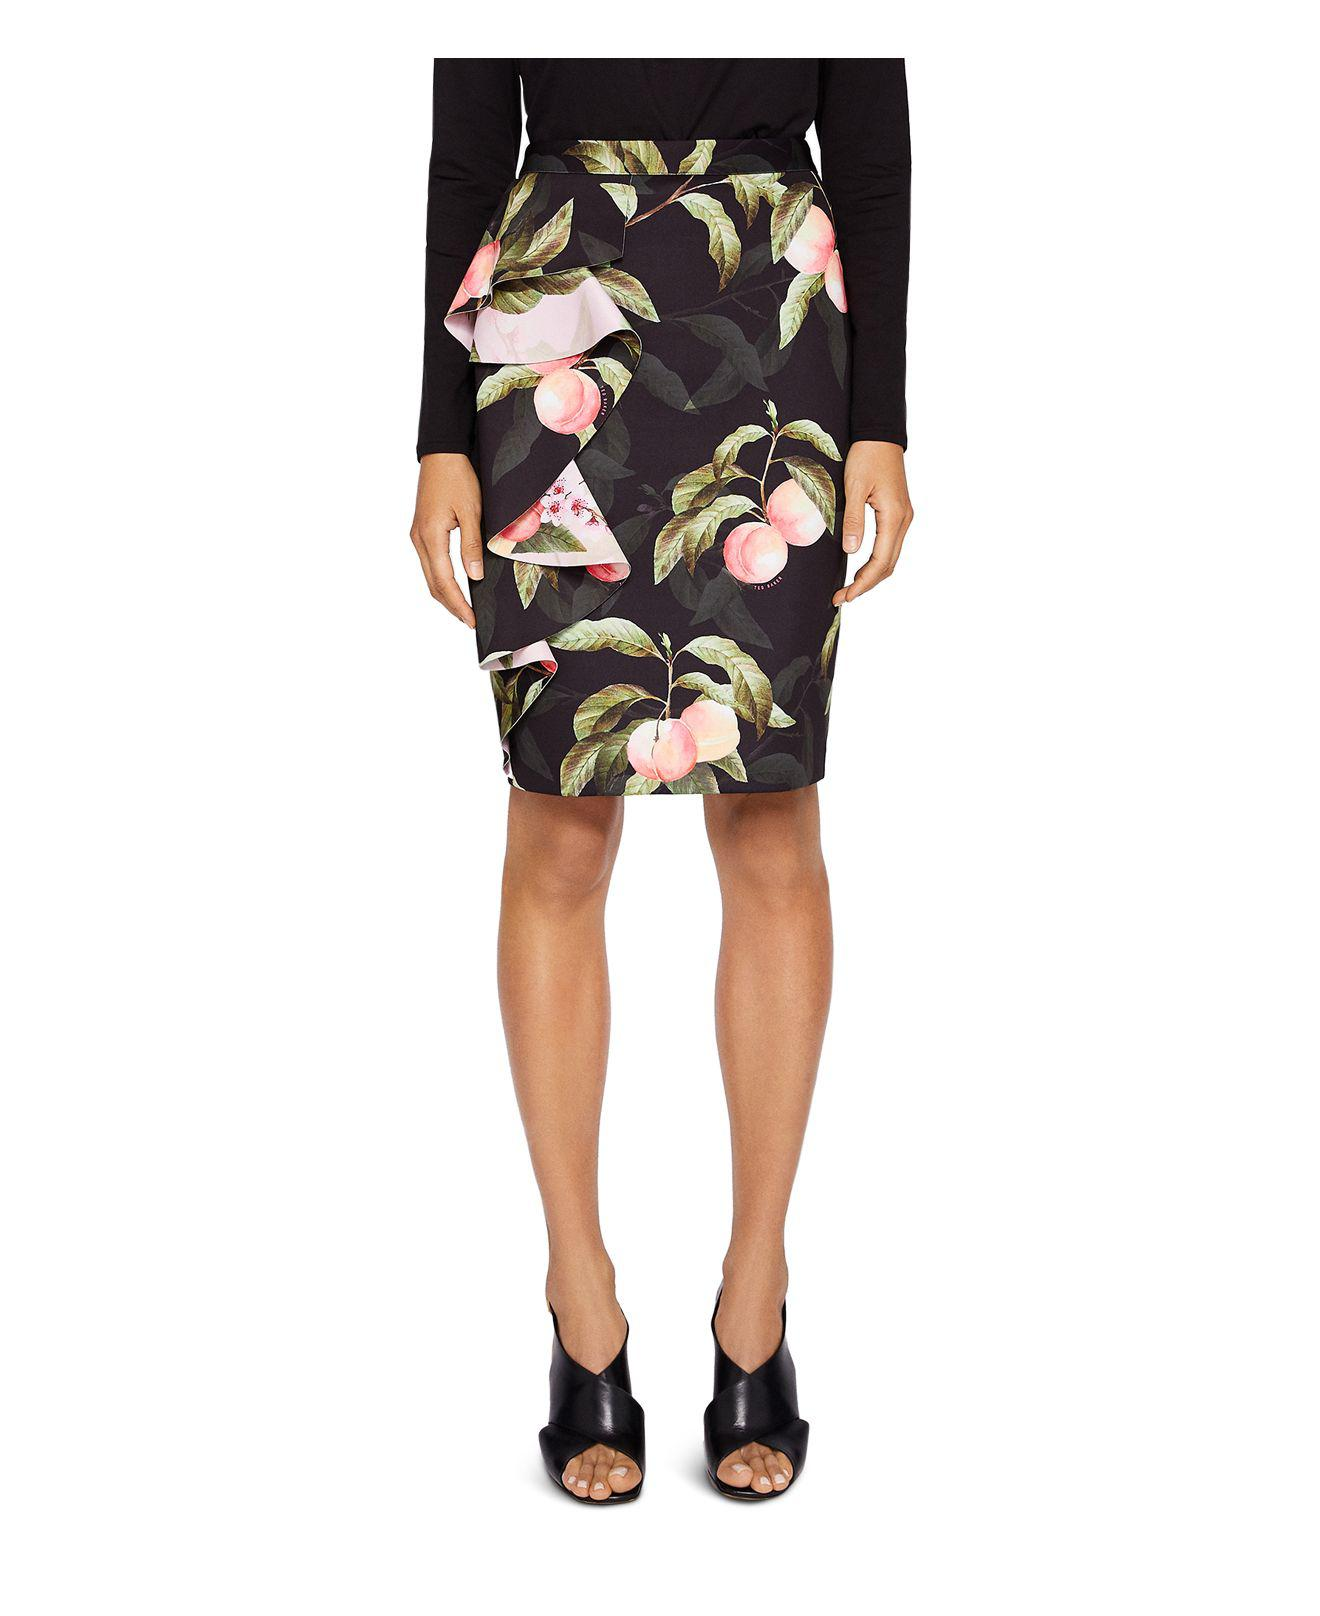 81b7ed1d2a Ted Baker Blayyke Peaches Ruffle Pencil Skirt in Black - Lyst